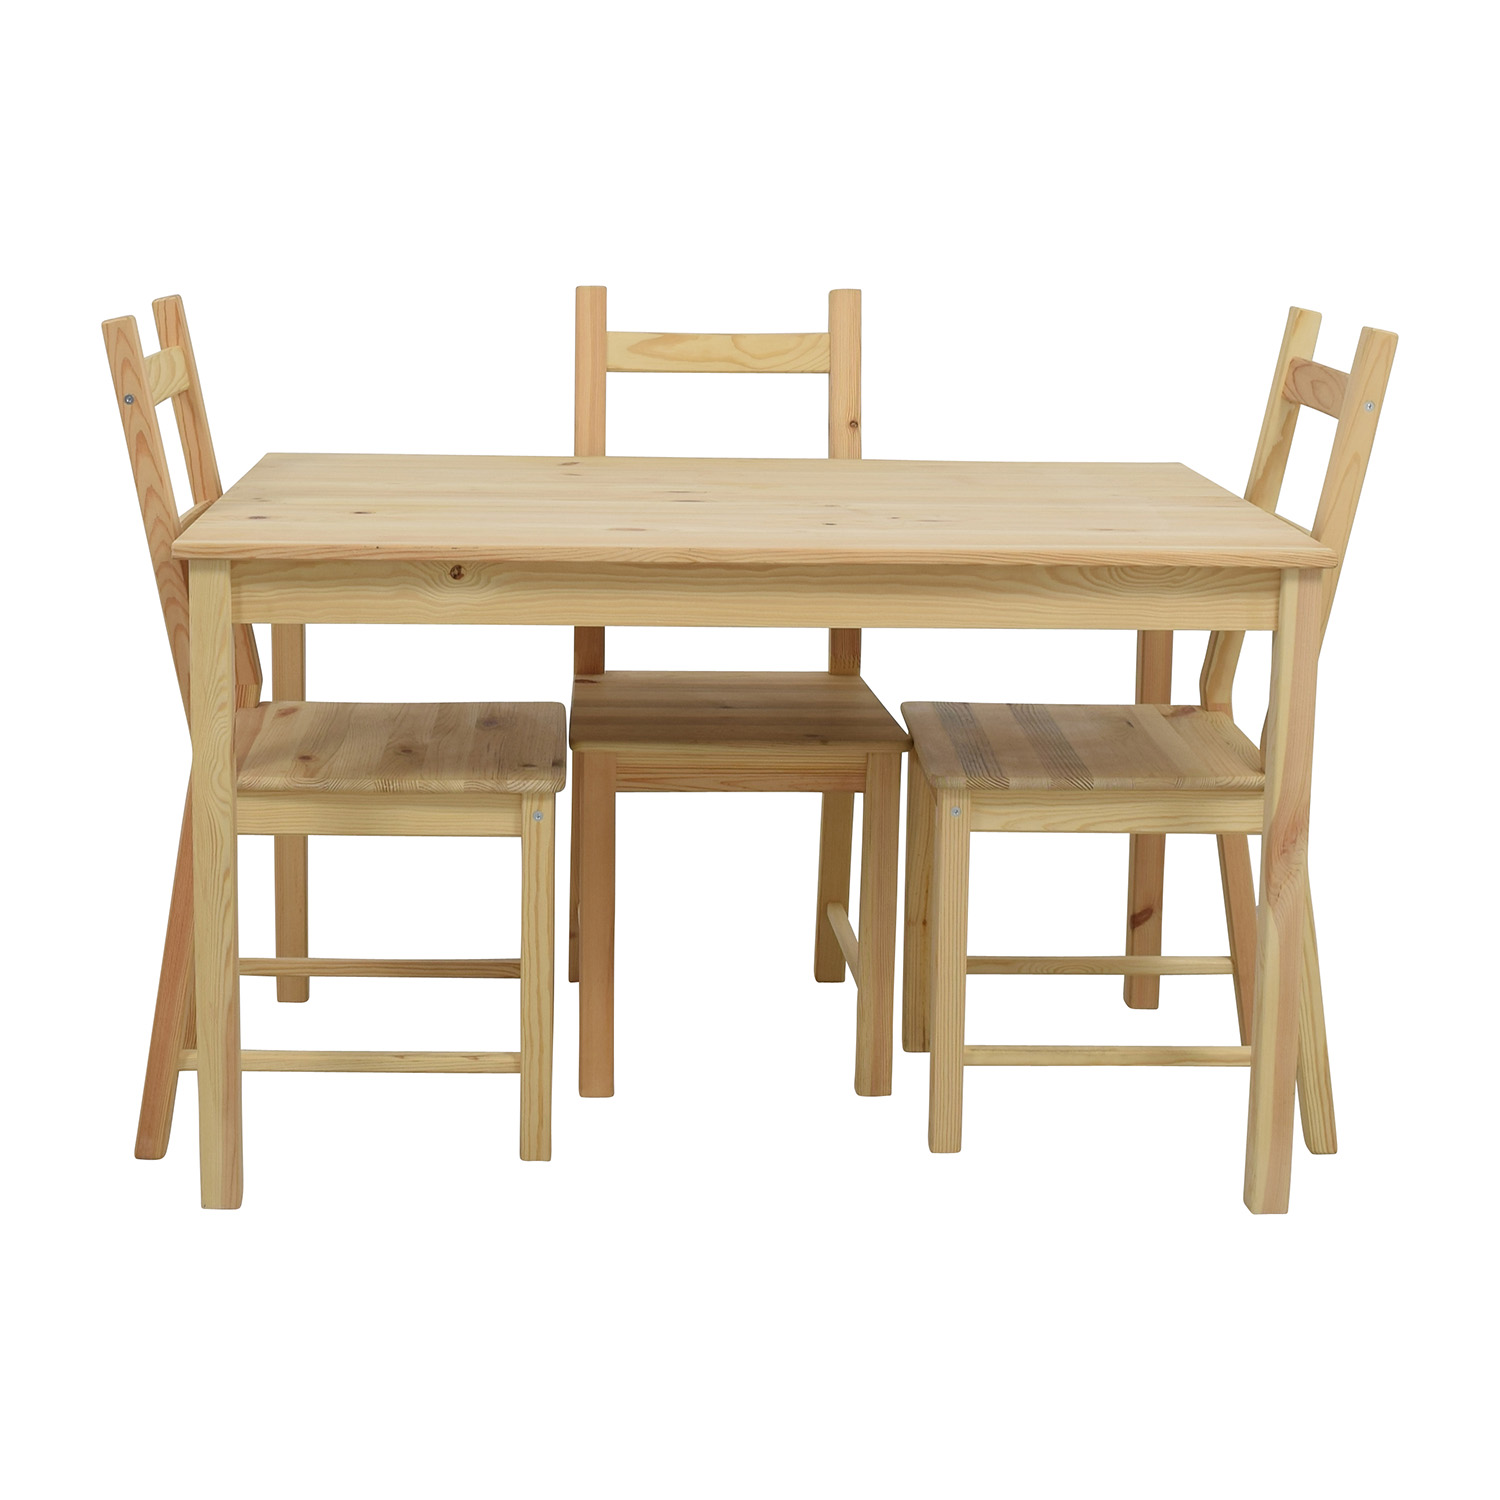 IKEA INGO Pine Table with IVAR Pine Chairs IKEA